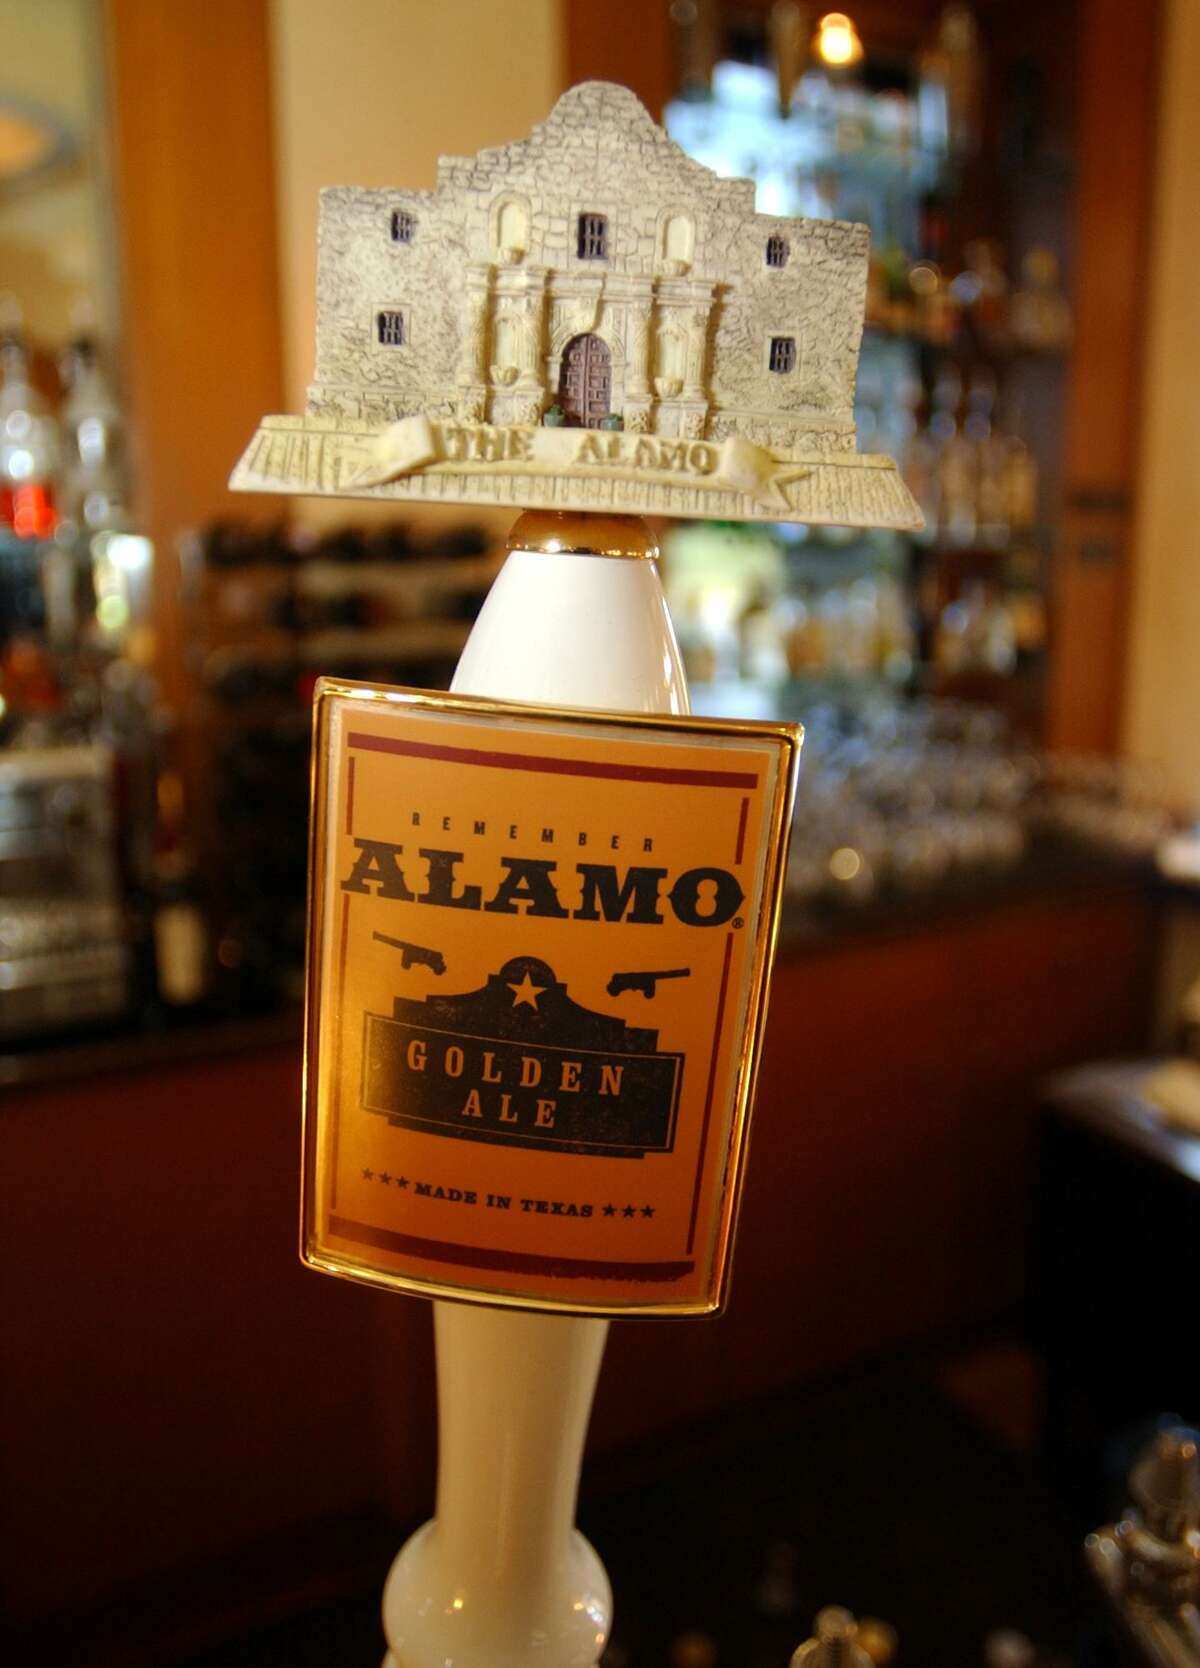 A locally brewed Alamo Golden Ale will wash down a meal of turkey and fixings scarfed while watching the Cowboys game.